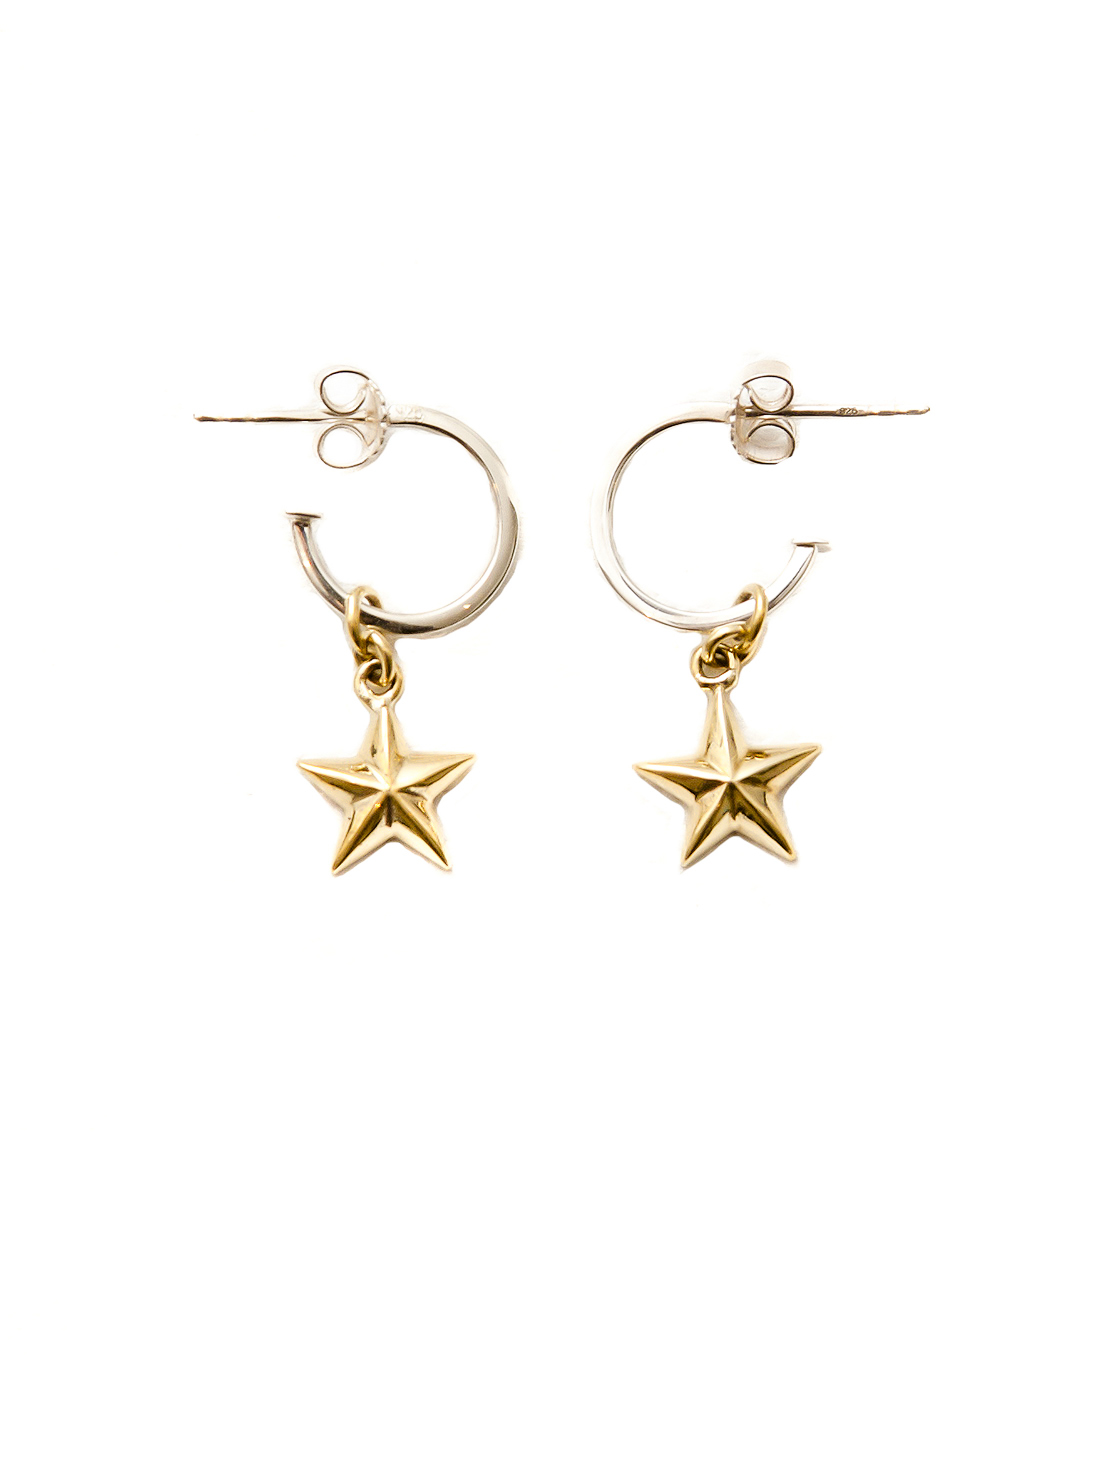 Silver Hoop Earrings With Brass Stars